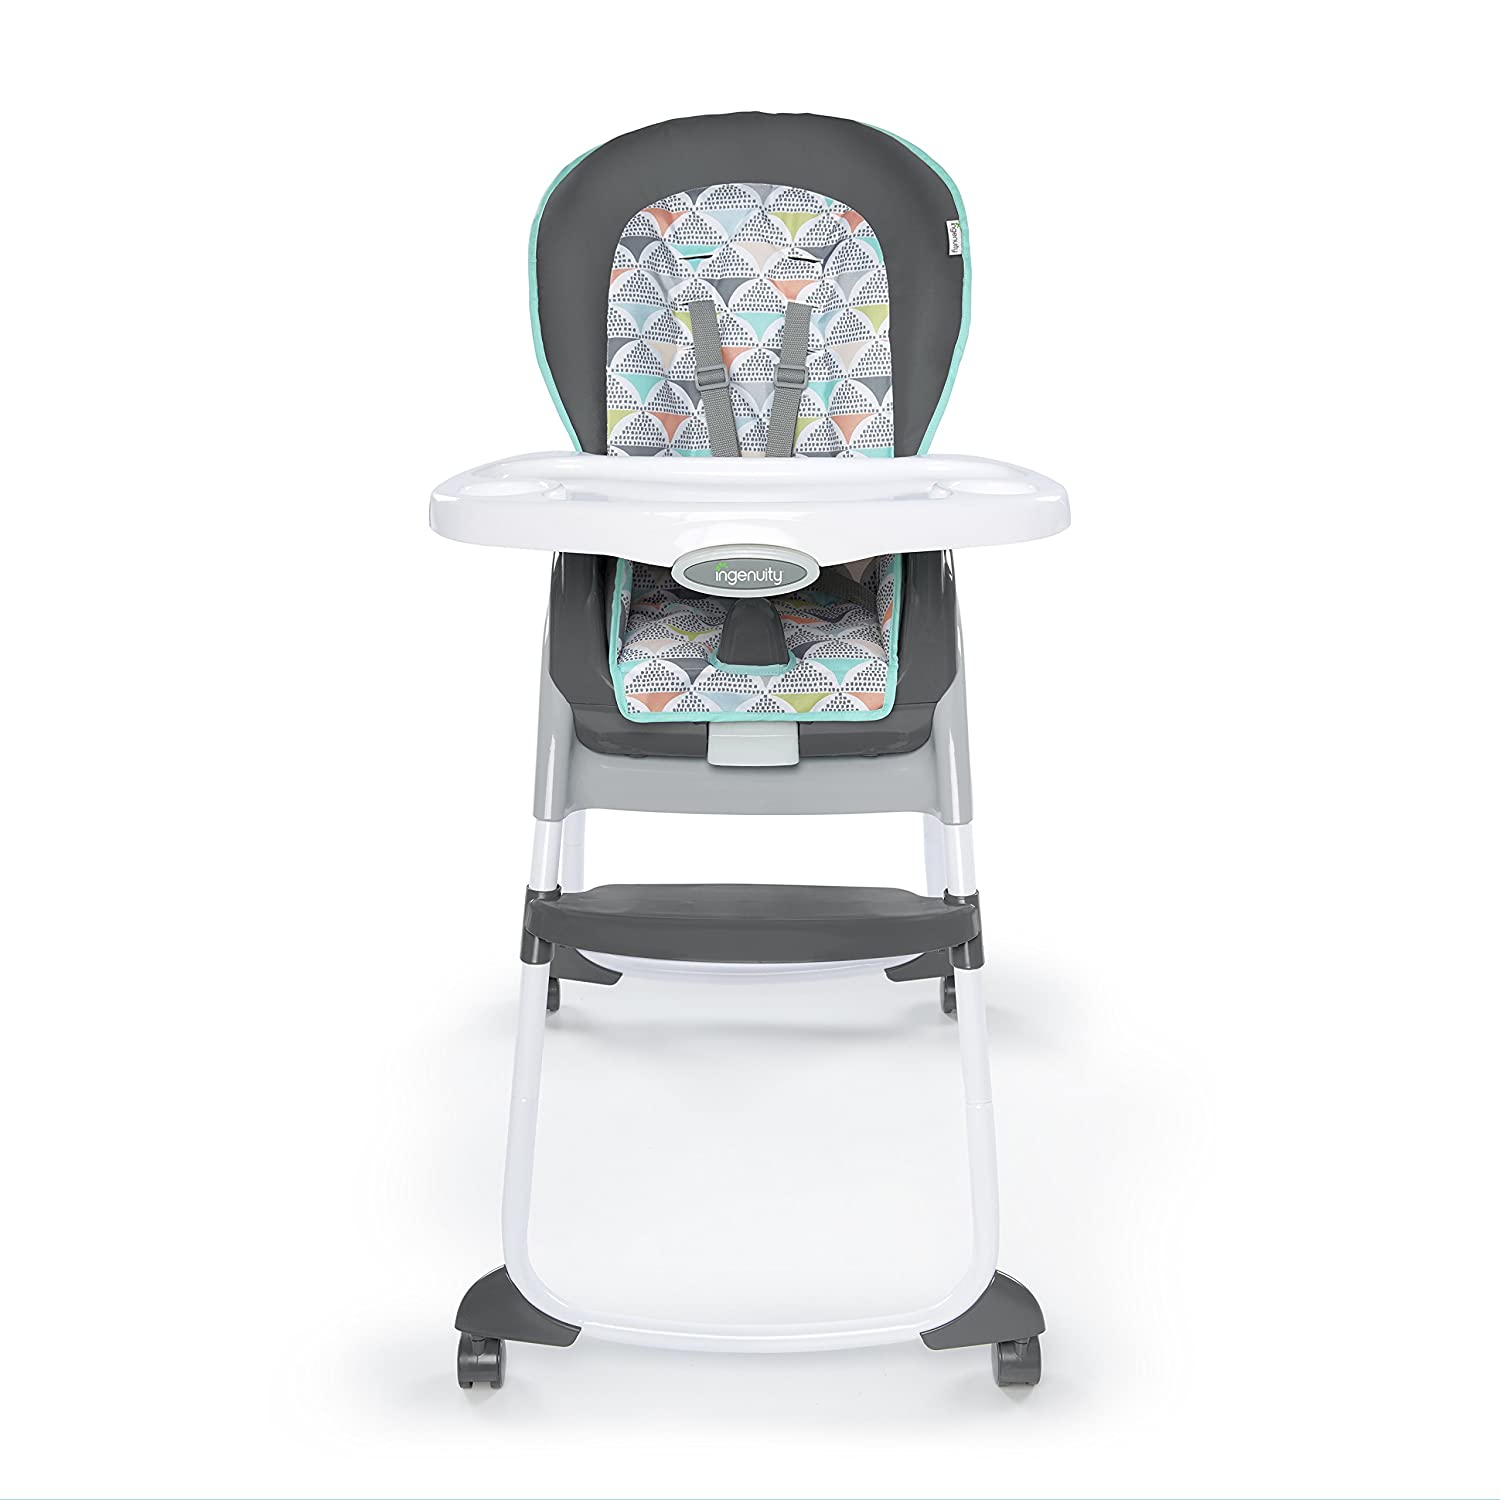 Ingenuity Trio 3-in-1 High Chair - Bryant - High Chair, Toddler Chair, and Booster Kids II - (Carson CA) 11555